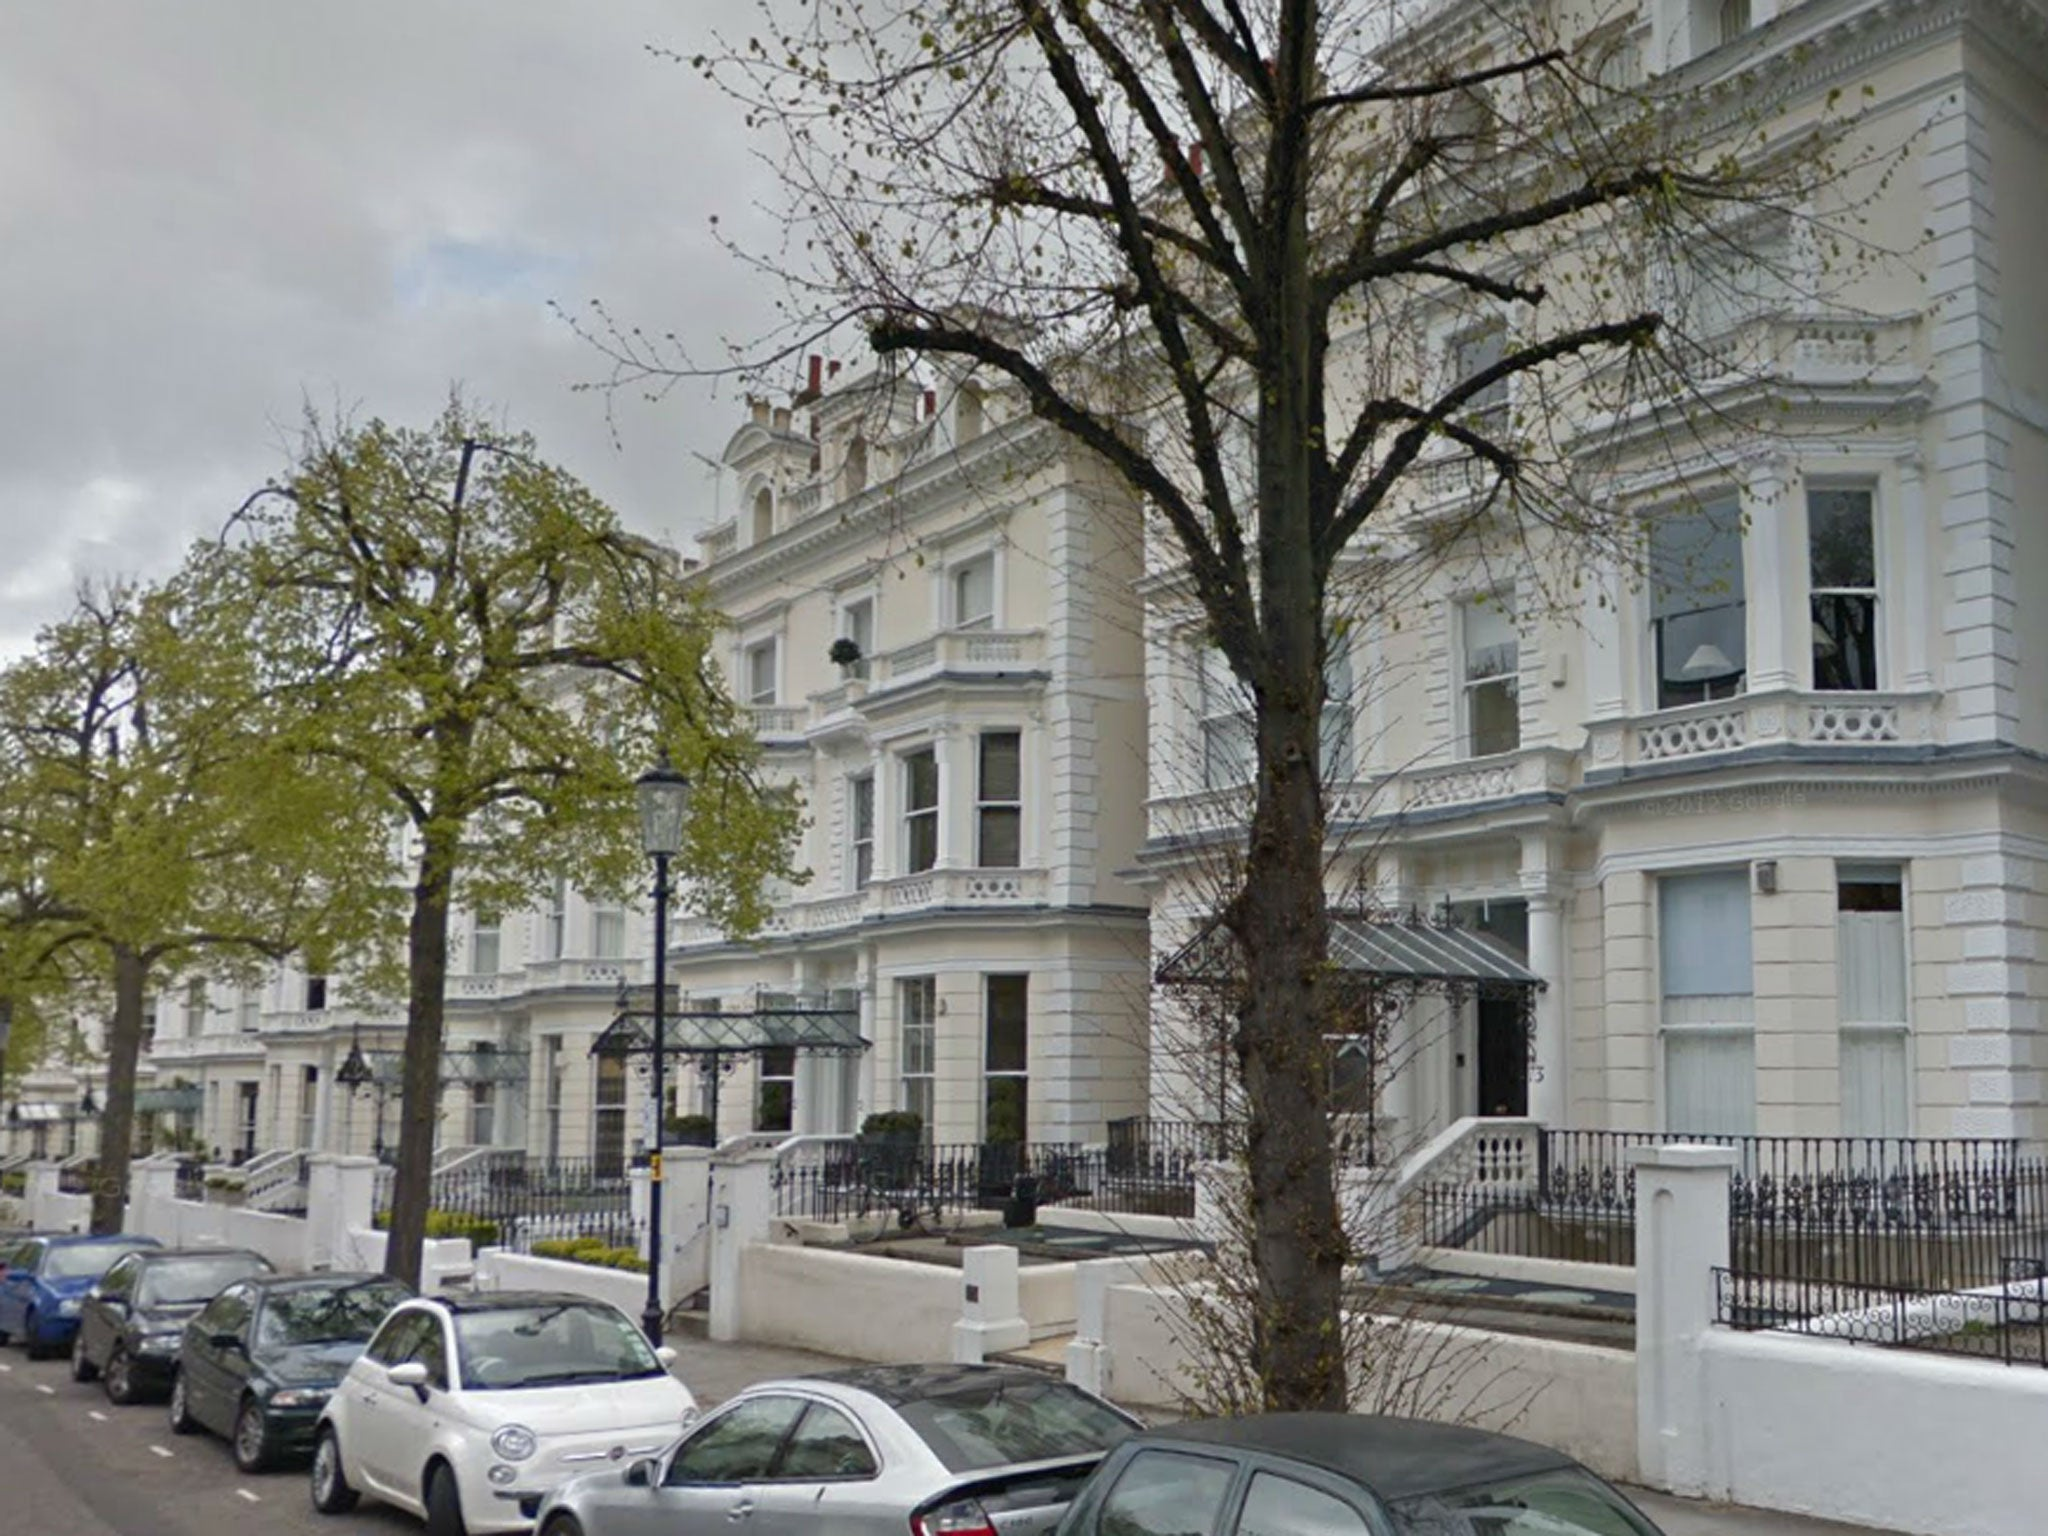 David and Victoria Beckham have bought a home in west London for £40 million – and have decided it needs another £5 million invested in refurbishment before it can be brought up to scratch.